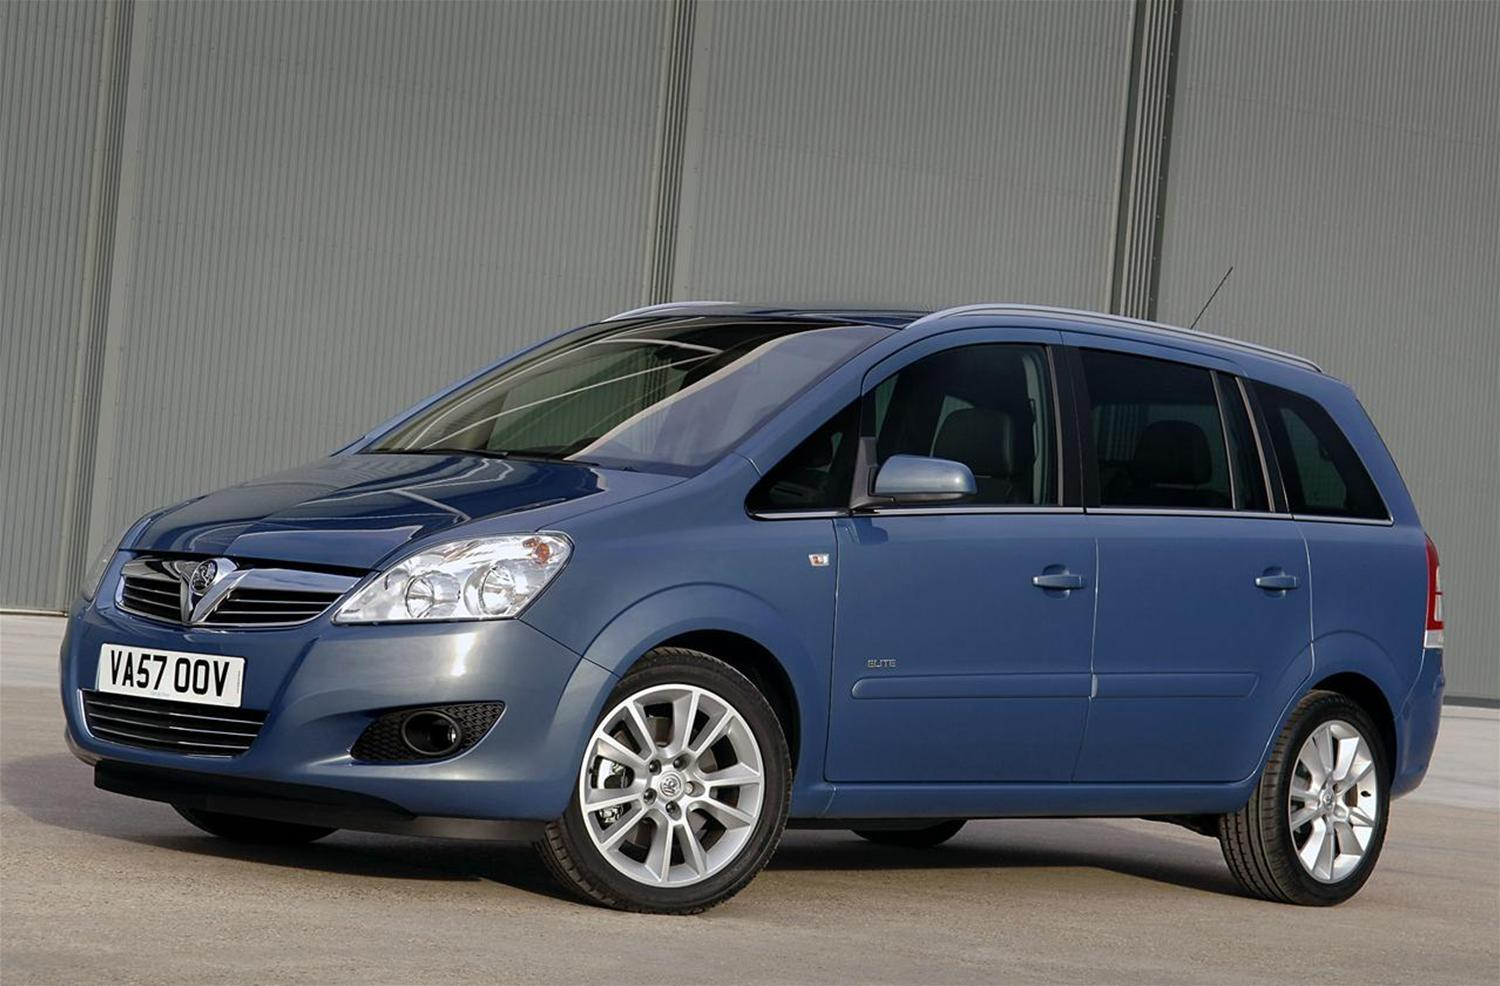 New Vauxhall Zafira deal drops prices by £7,500